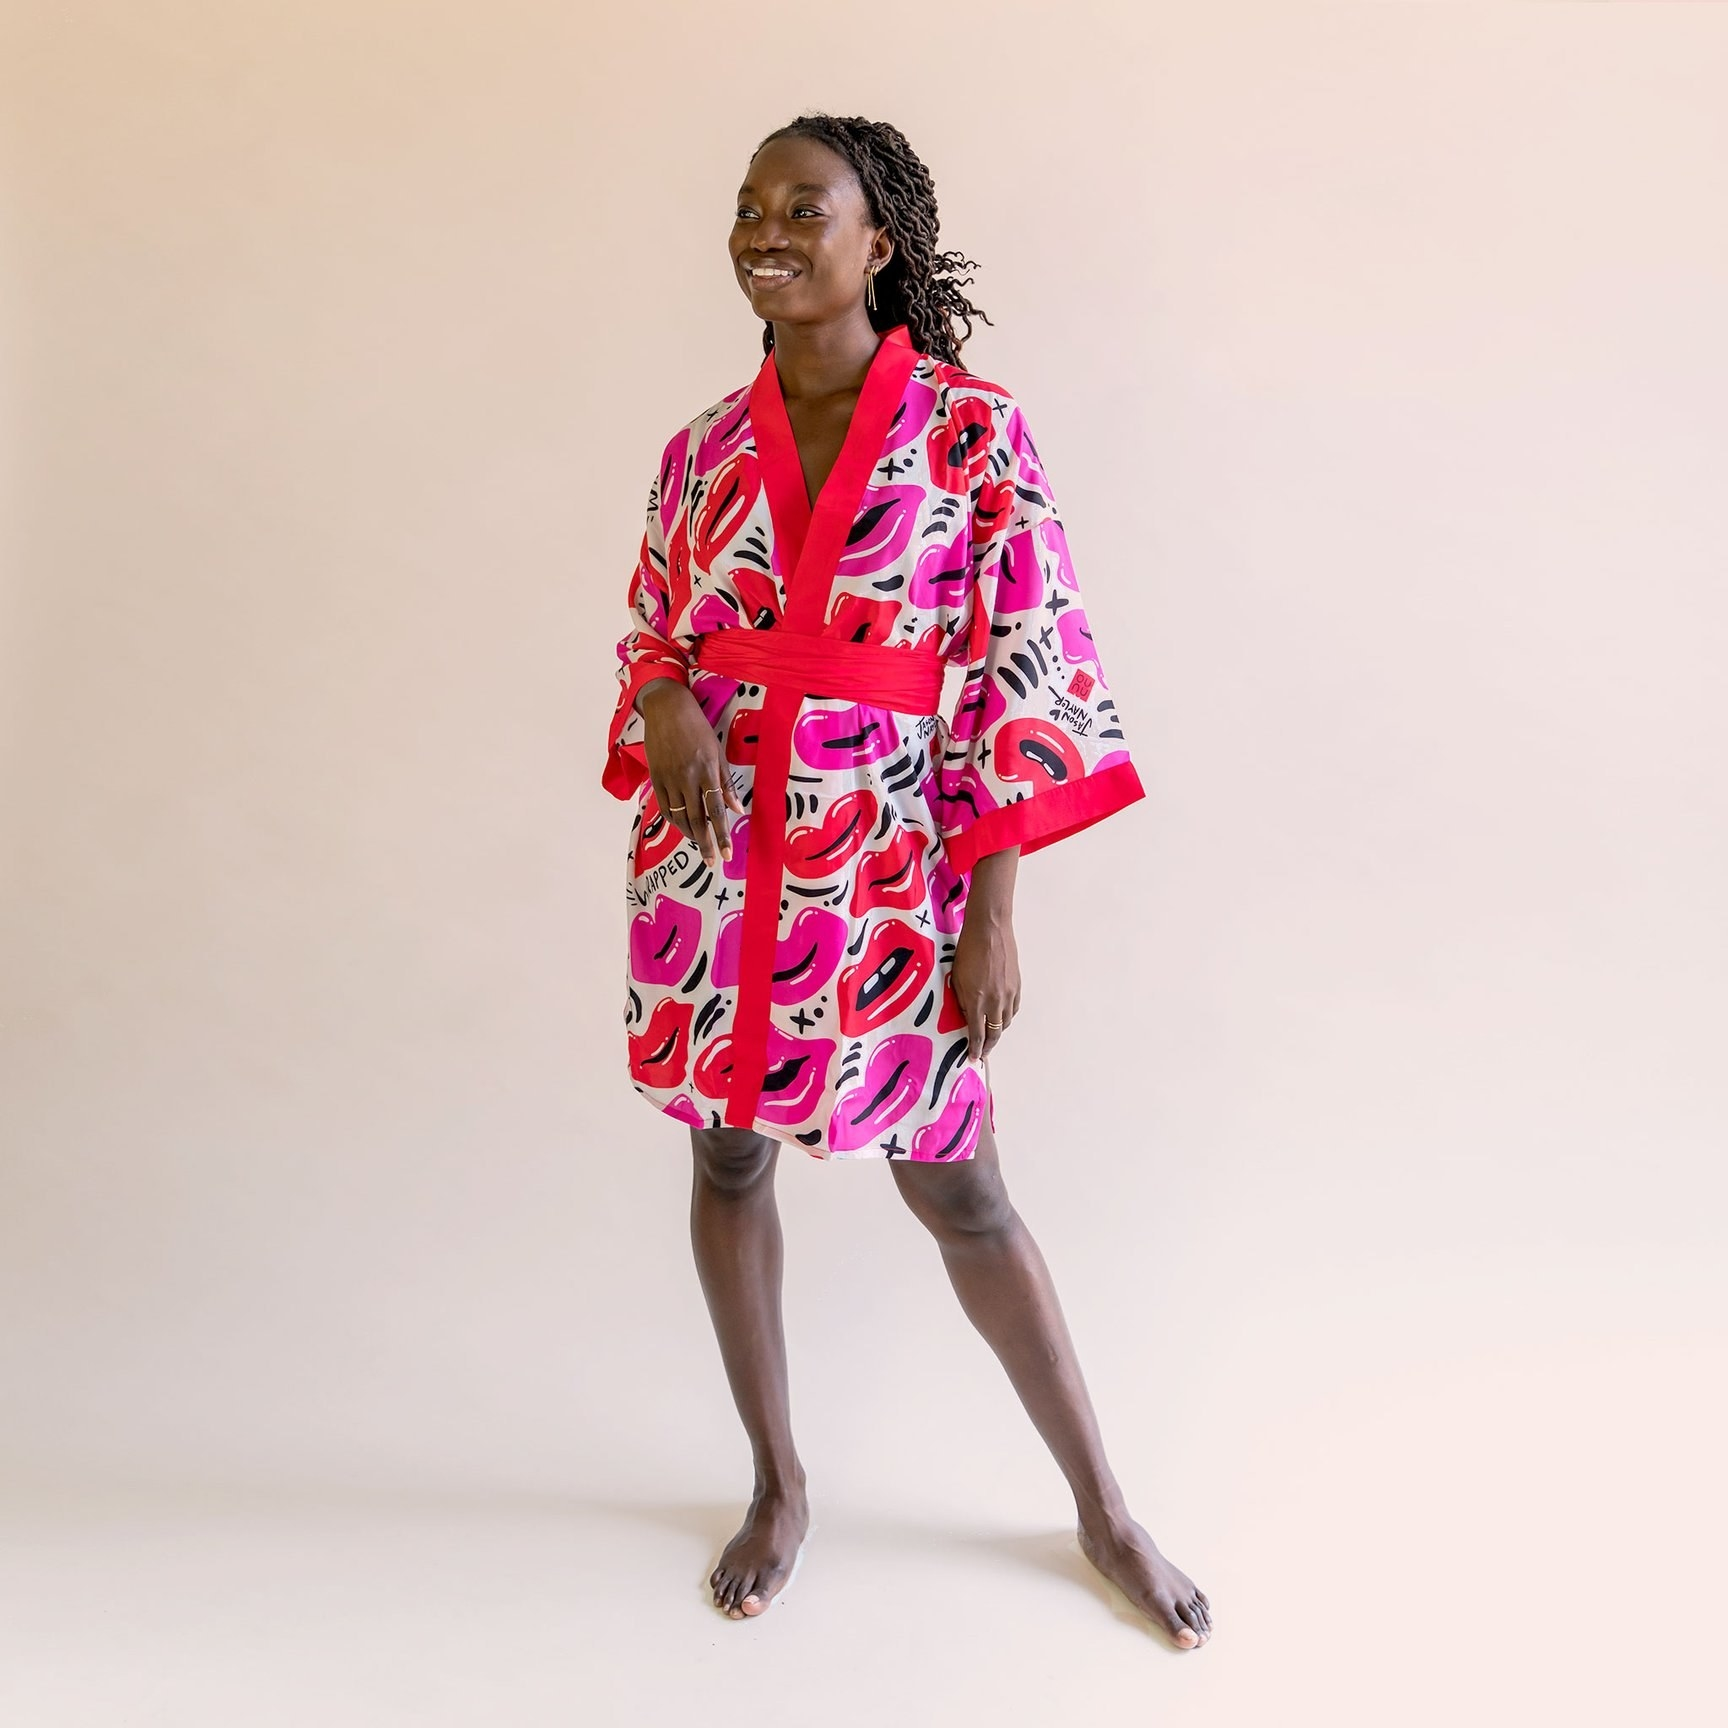 A model wearing the robe